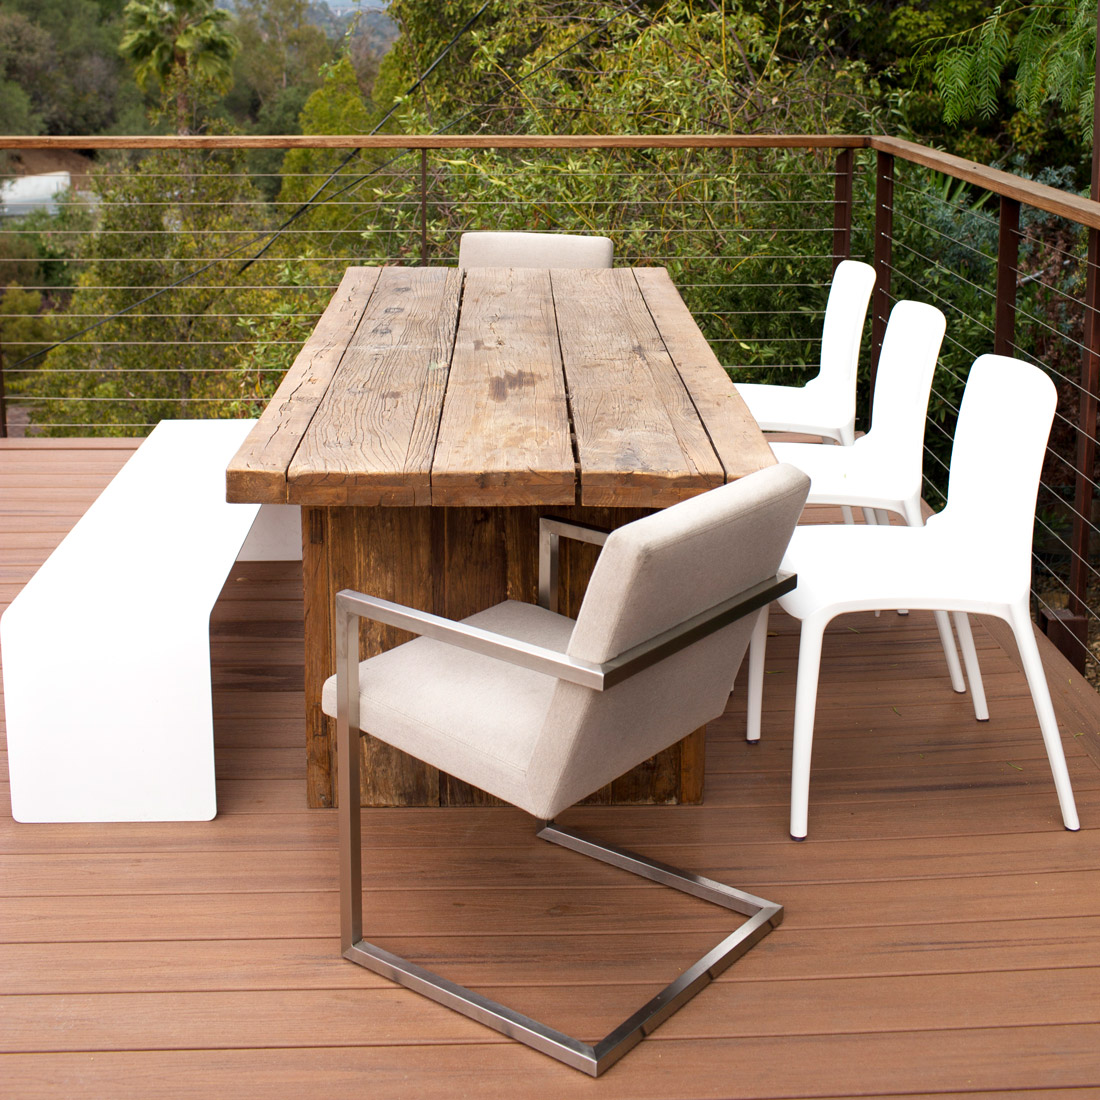 Modern outdoor plastic chairs -  Outdoor Dining Set With White Plastic Chairs And Bench And Metal Frame Upholstered Chairs And Rustic Modern